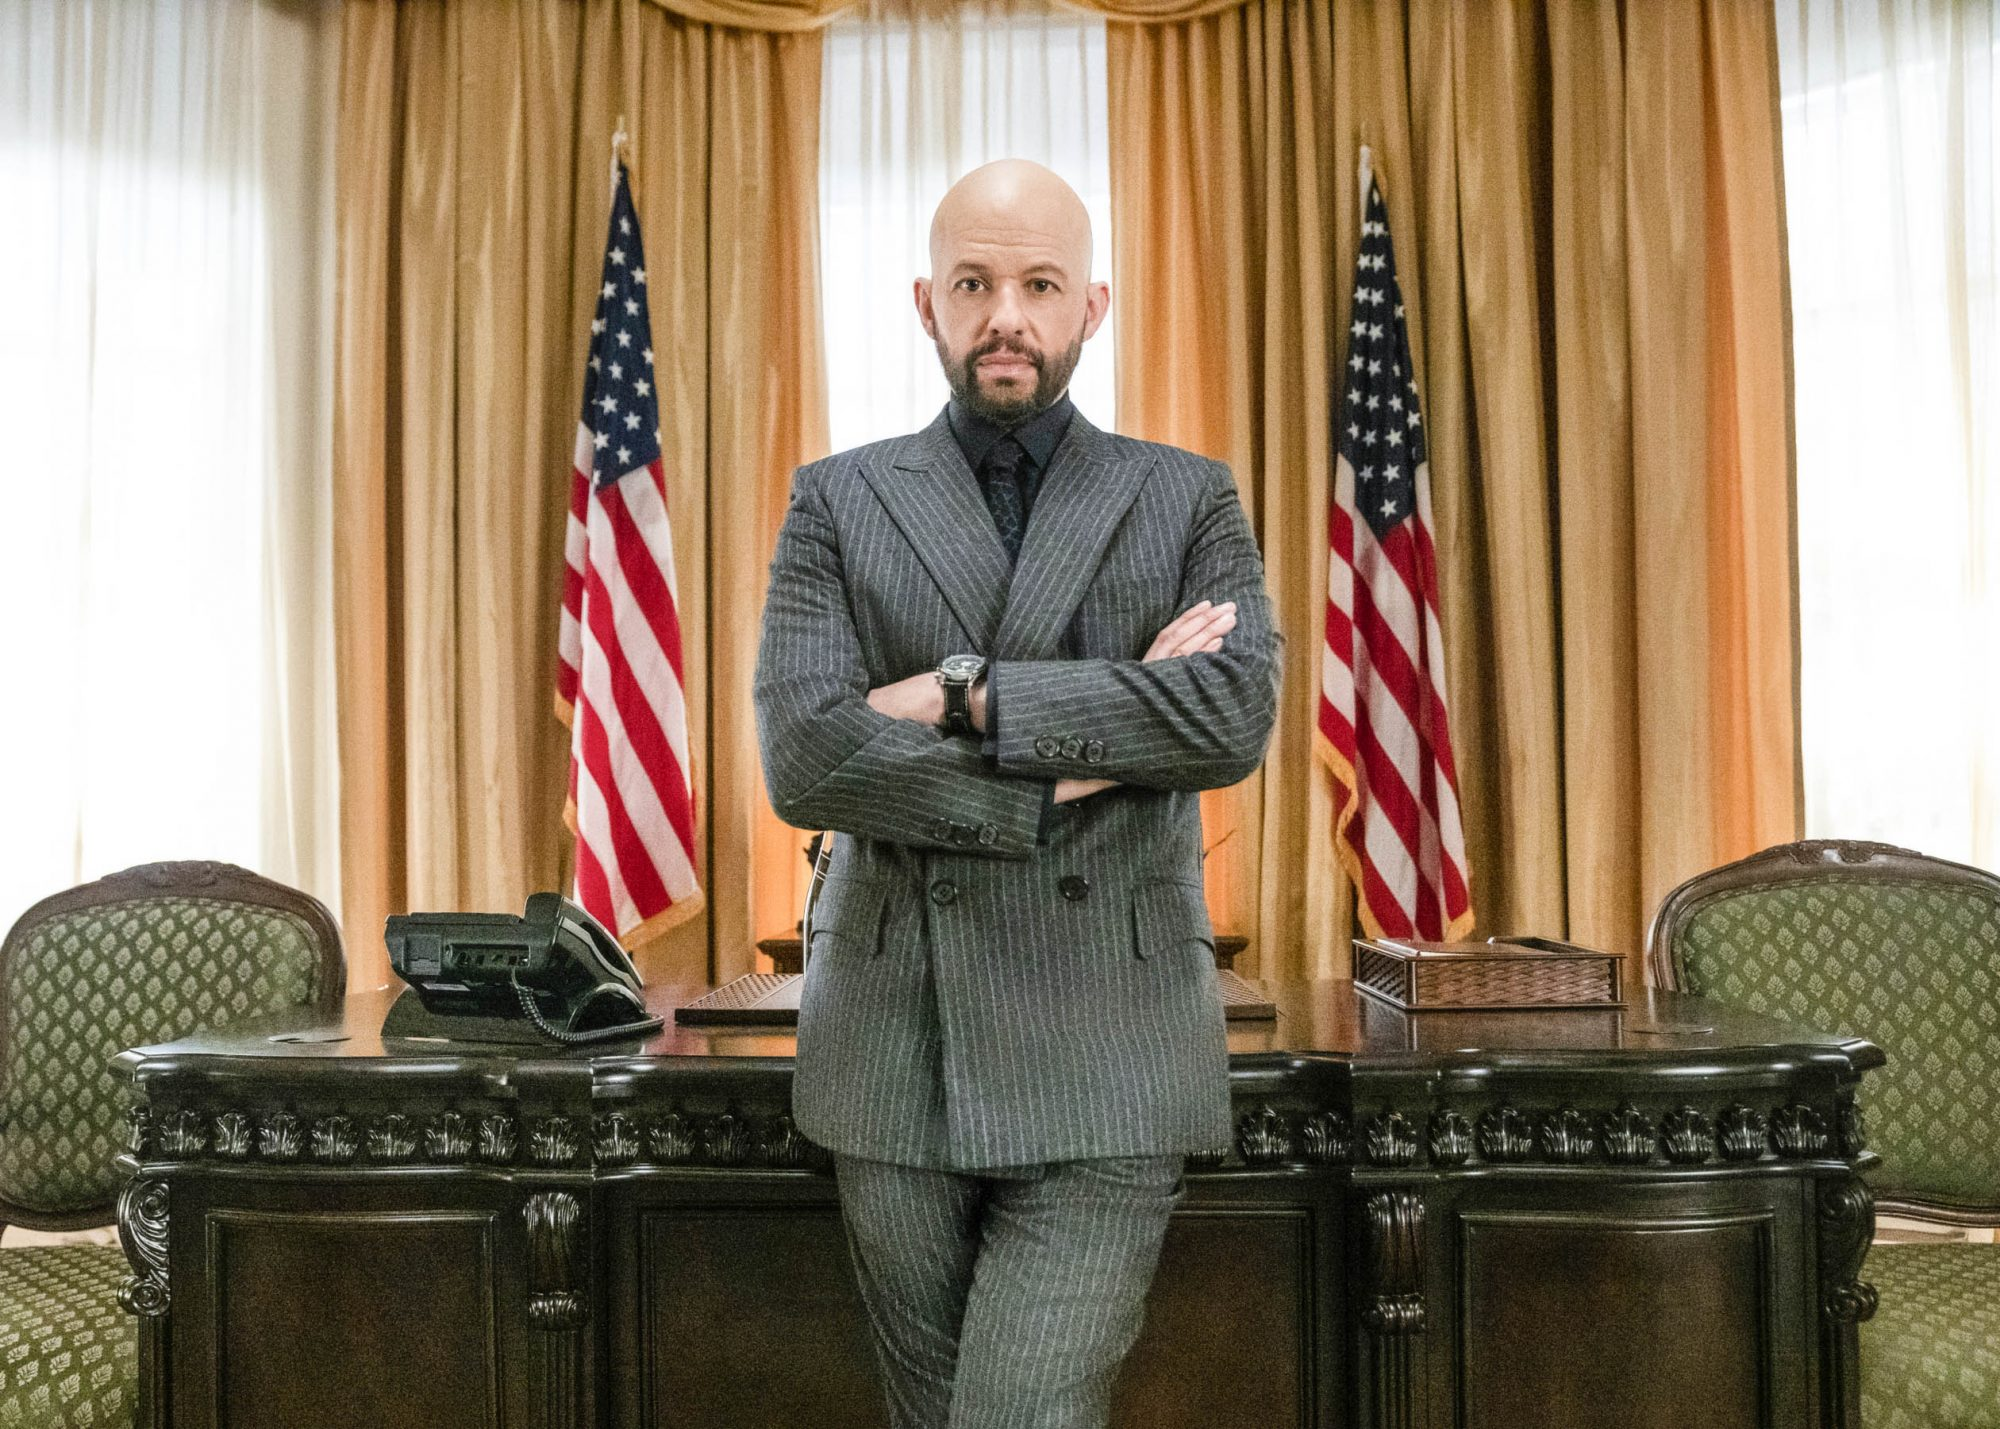 """Supergirl -- """"The Quest for Peace"""" -- Image Number: SPG422A_0546b.jpg -- Pictured: Jon Cryer as Lex Luthor -- Photo: Colin Bentley/The CW -- © 2019 The CW Network, LLC. All Rights Reserved."""